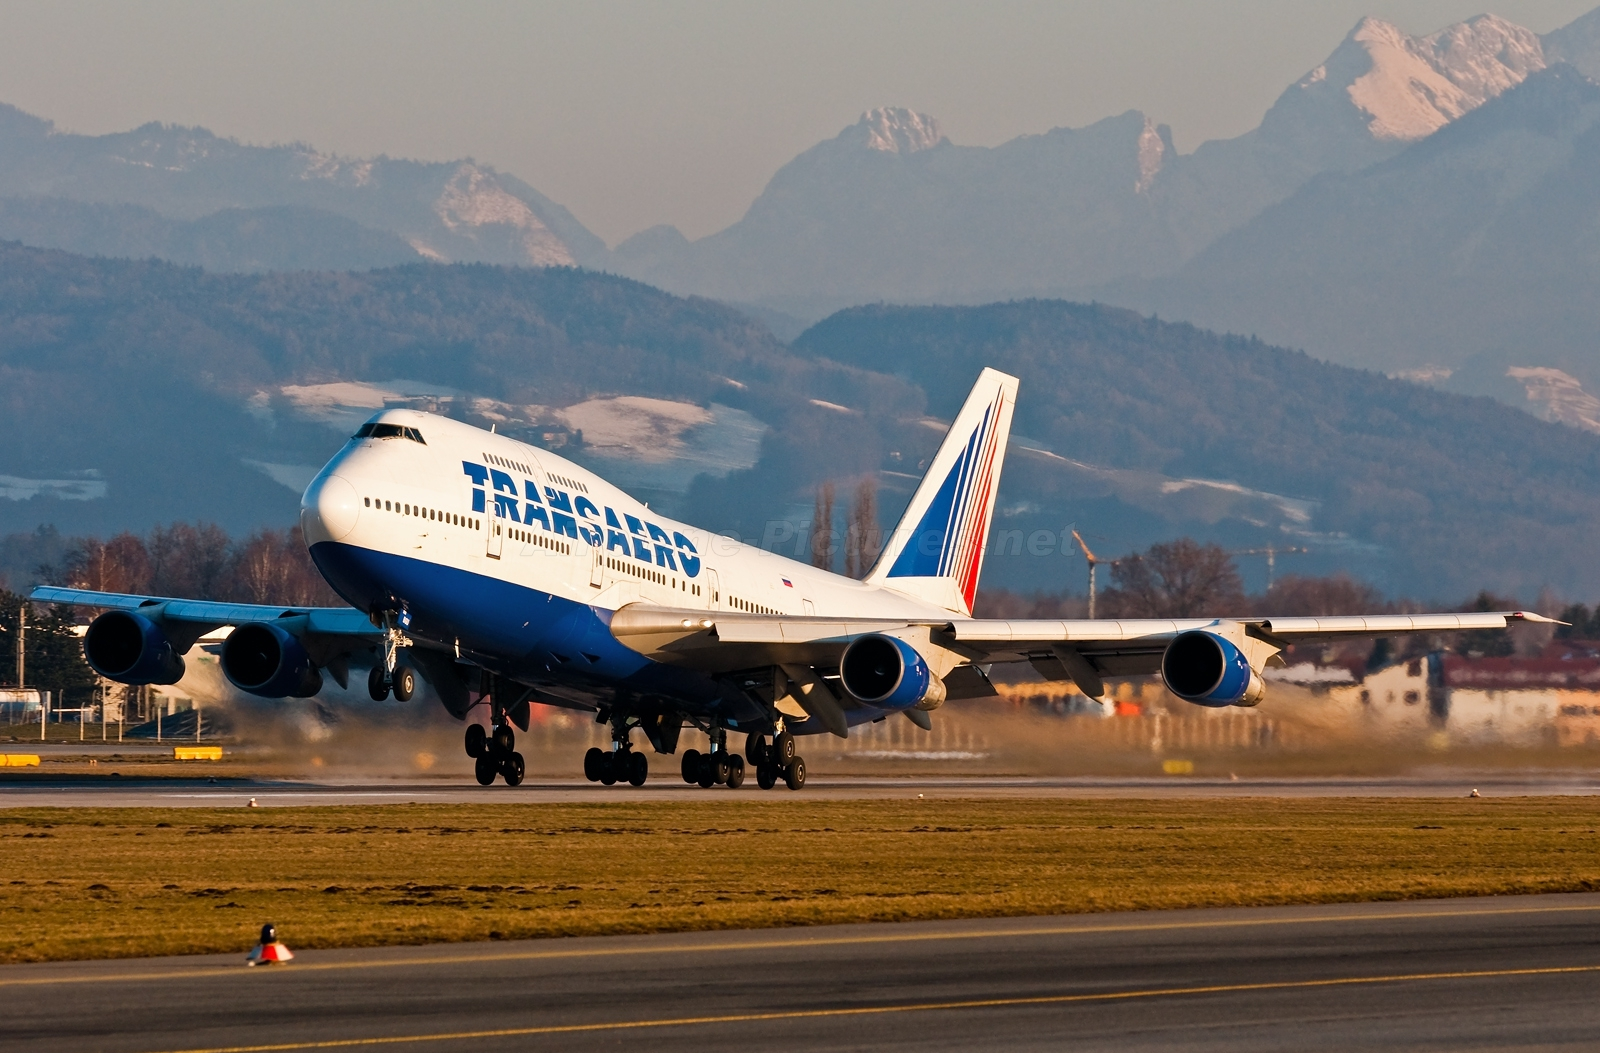 Transaero stopped flying